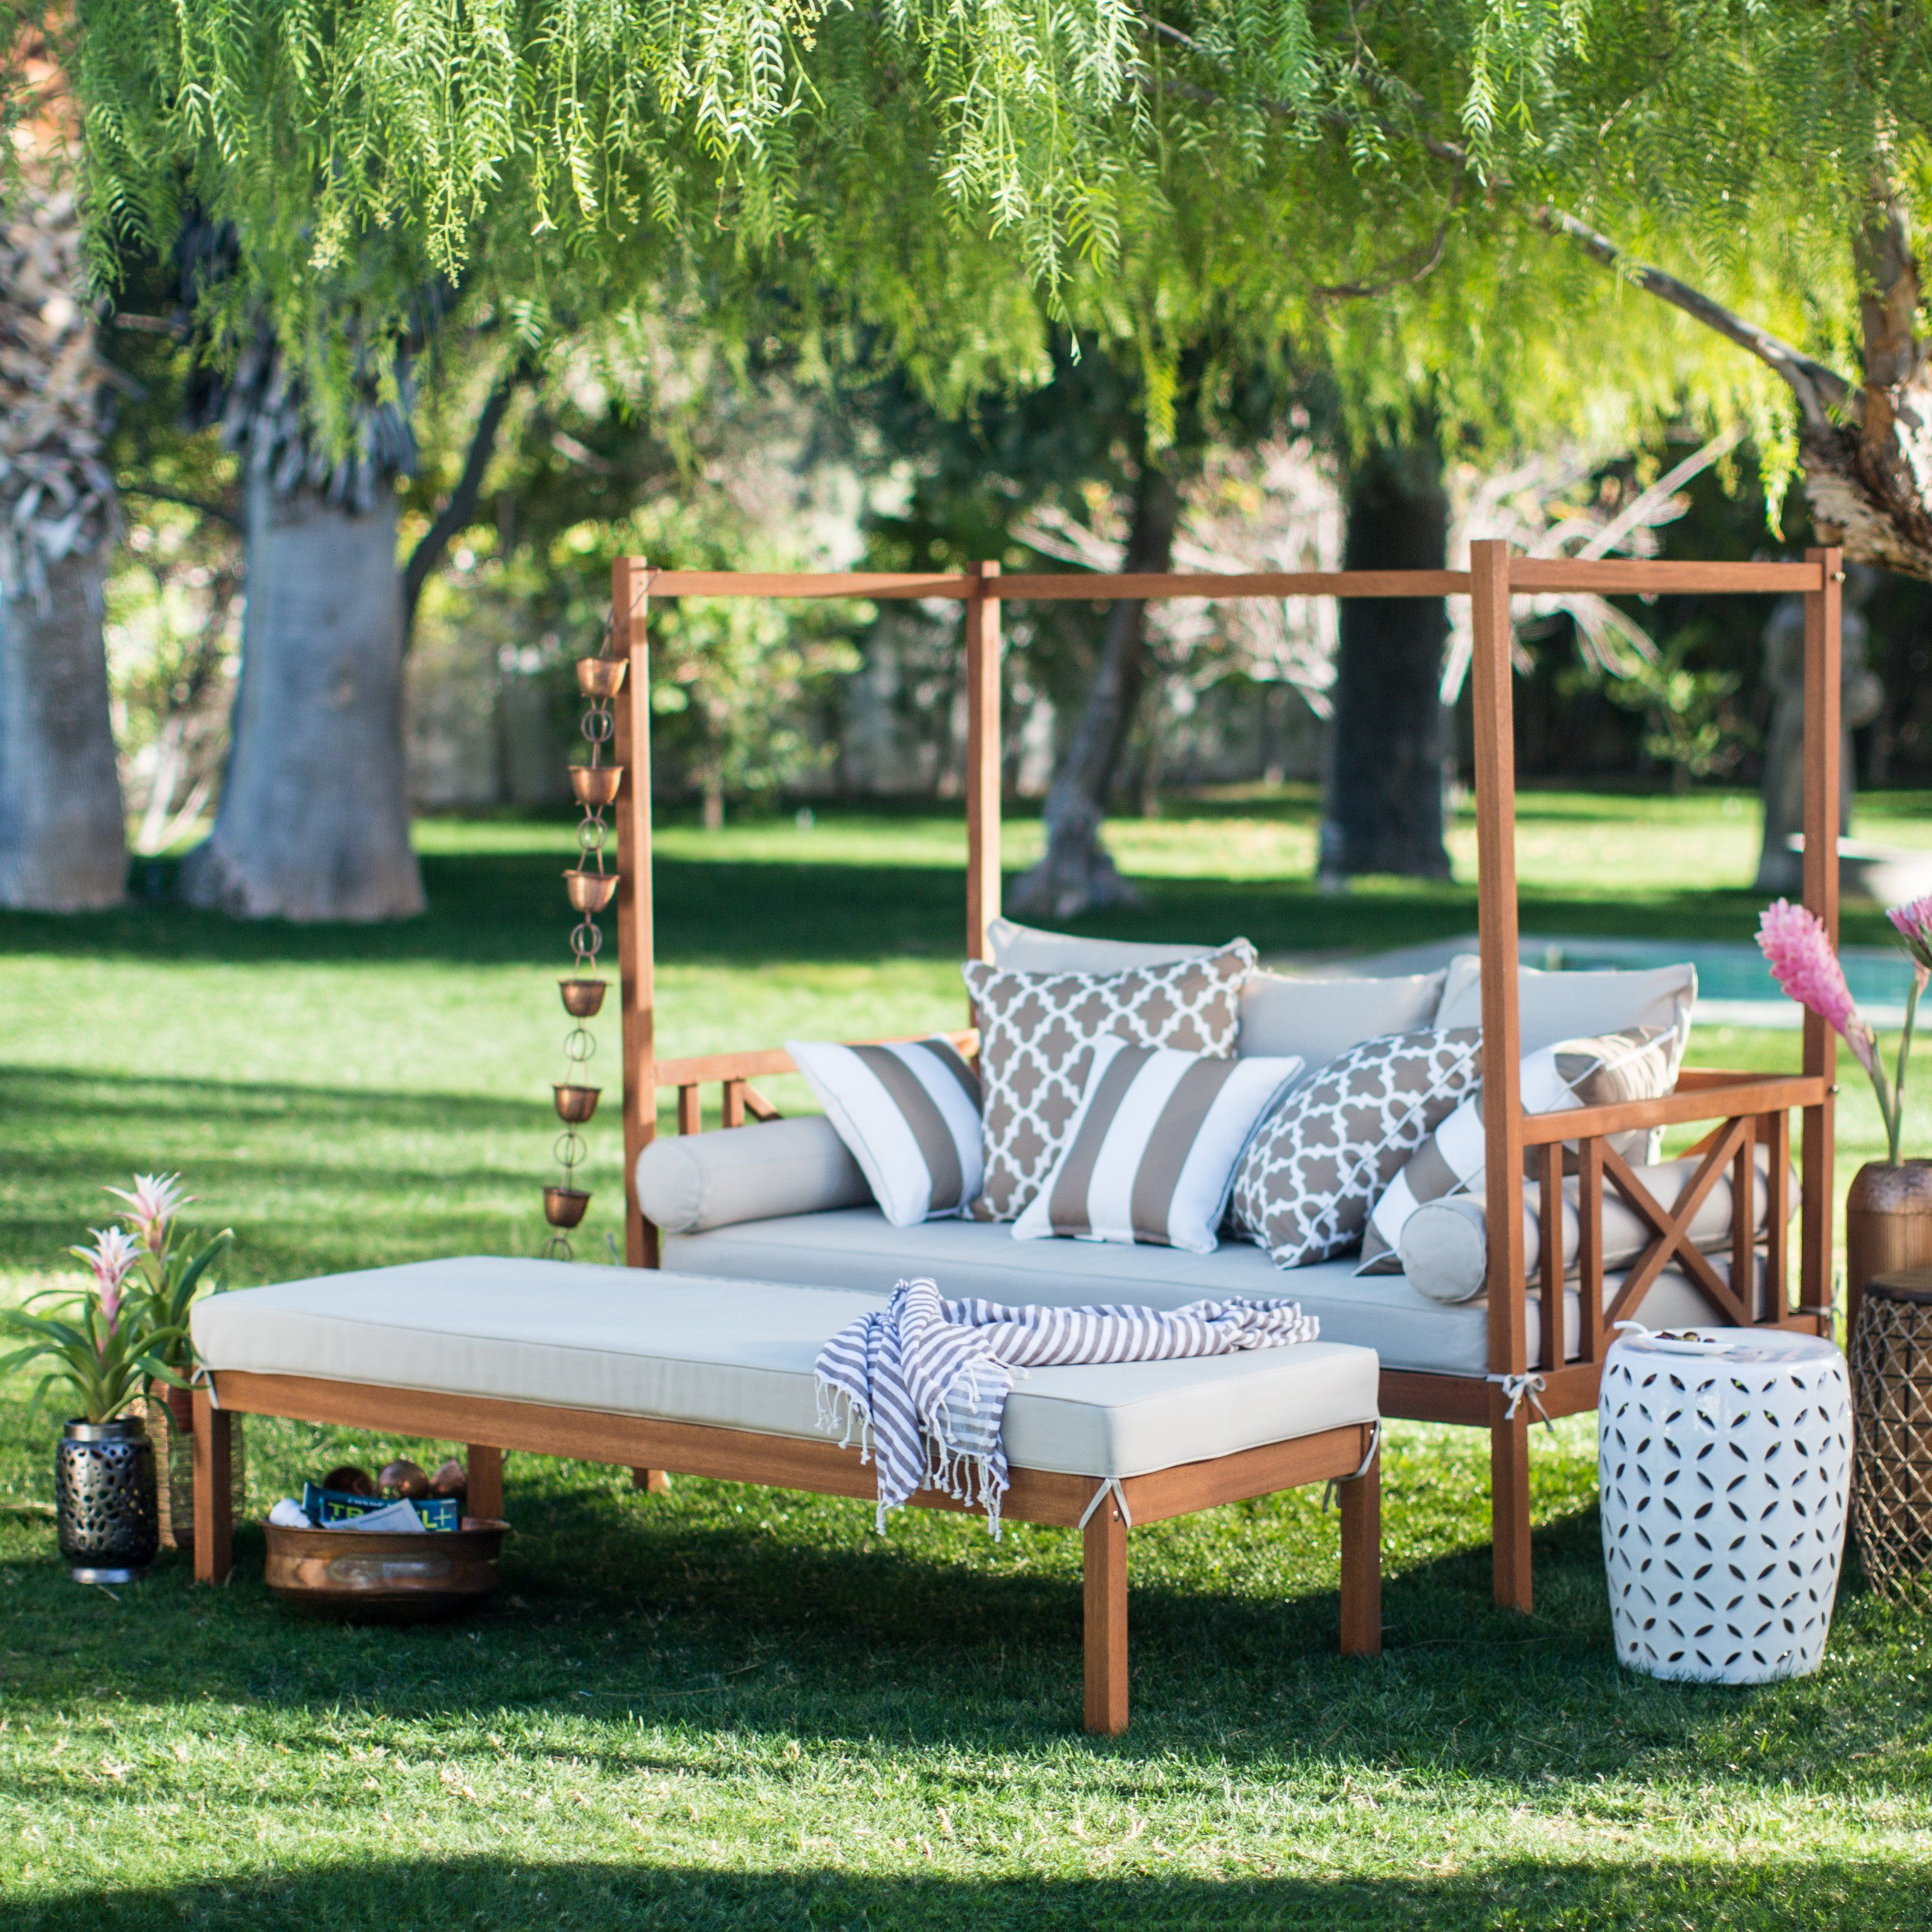 and style astonishing u in pattern as inspiration of pict shocking bed diy canopy daybed chic perky nsyd outdoor cone wells day with egg landscaping